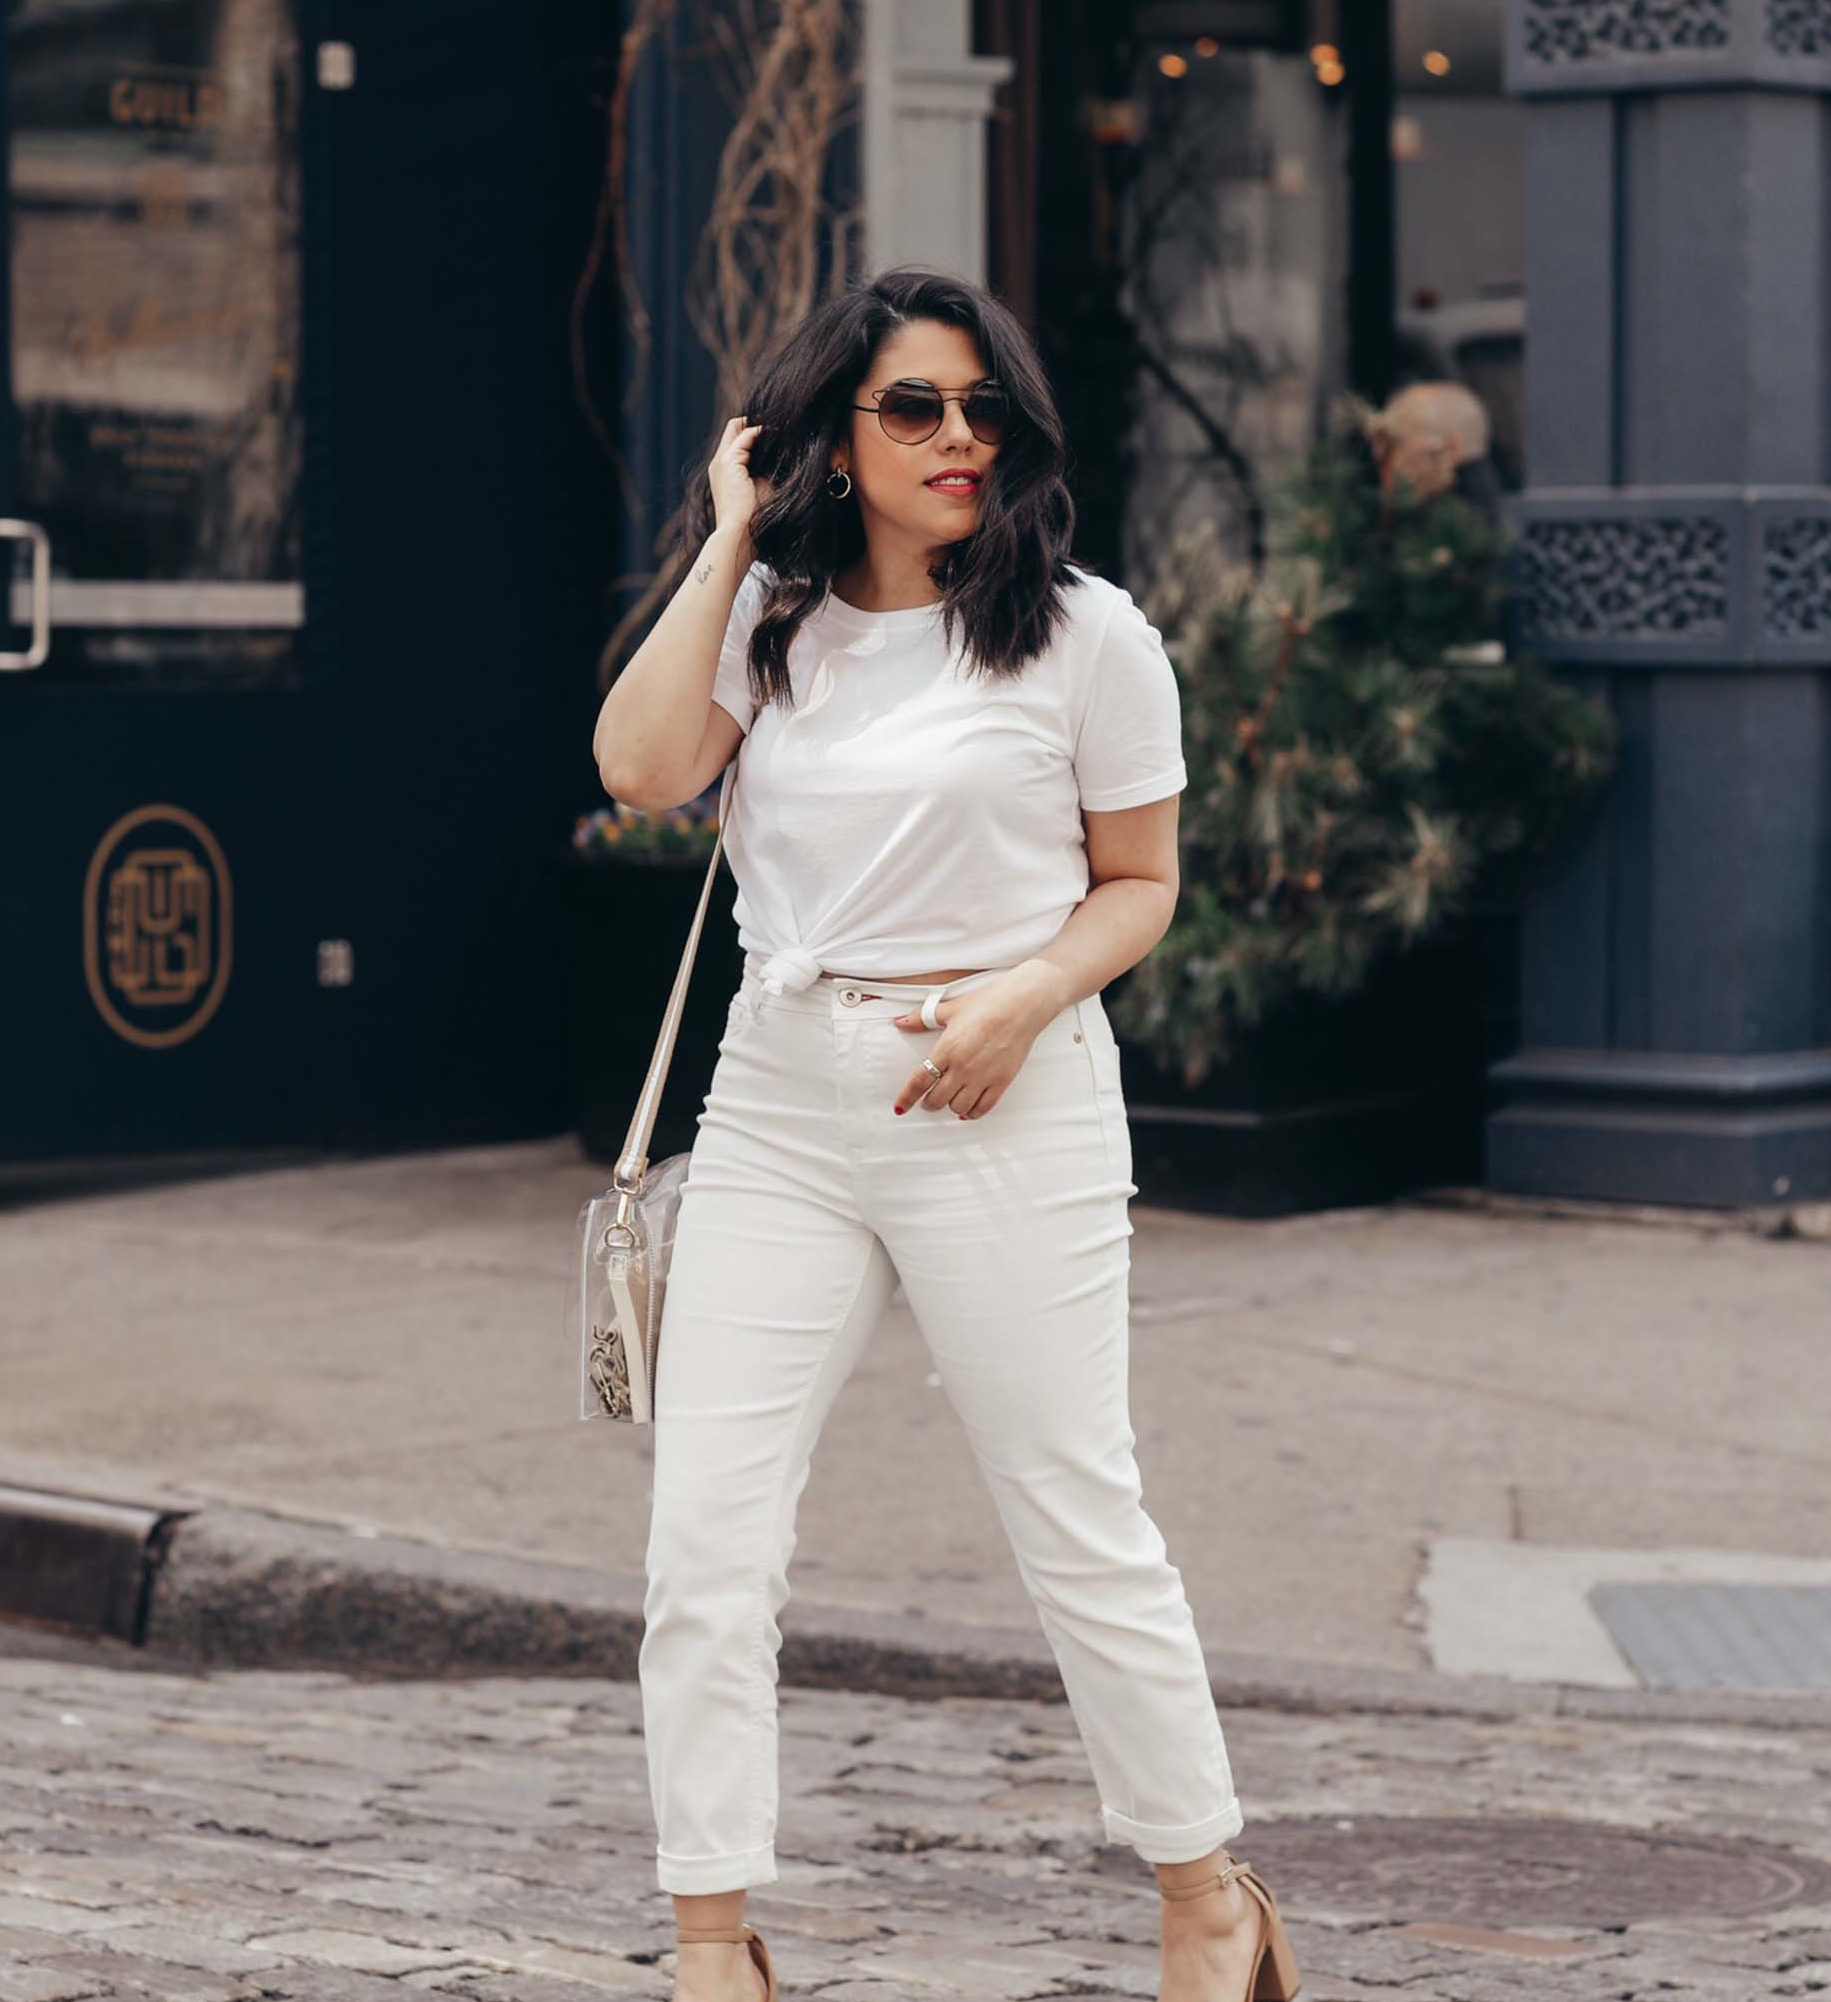 naty michele in white outfit for we dress america